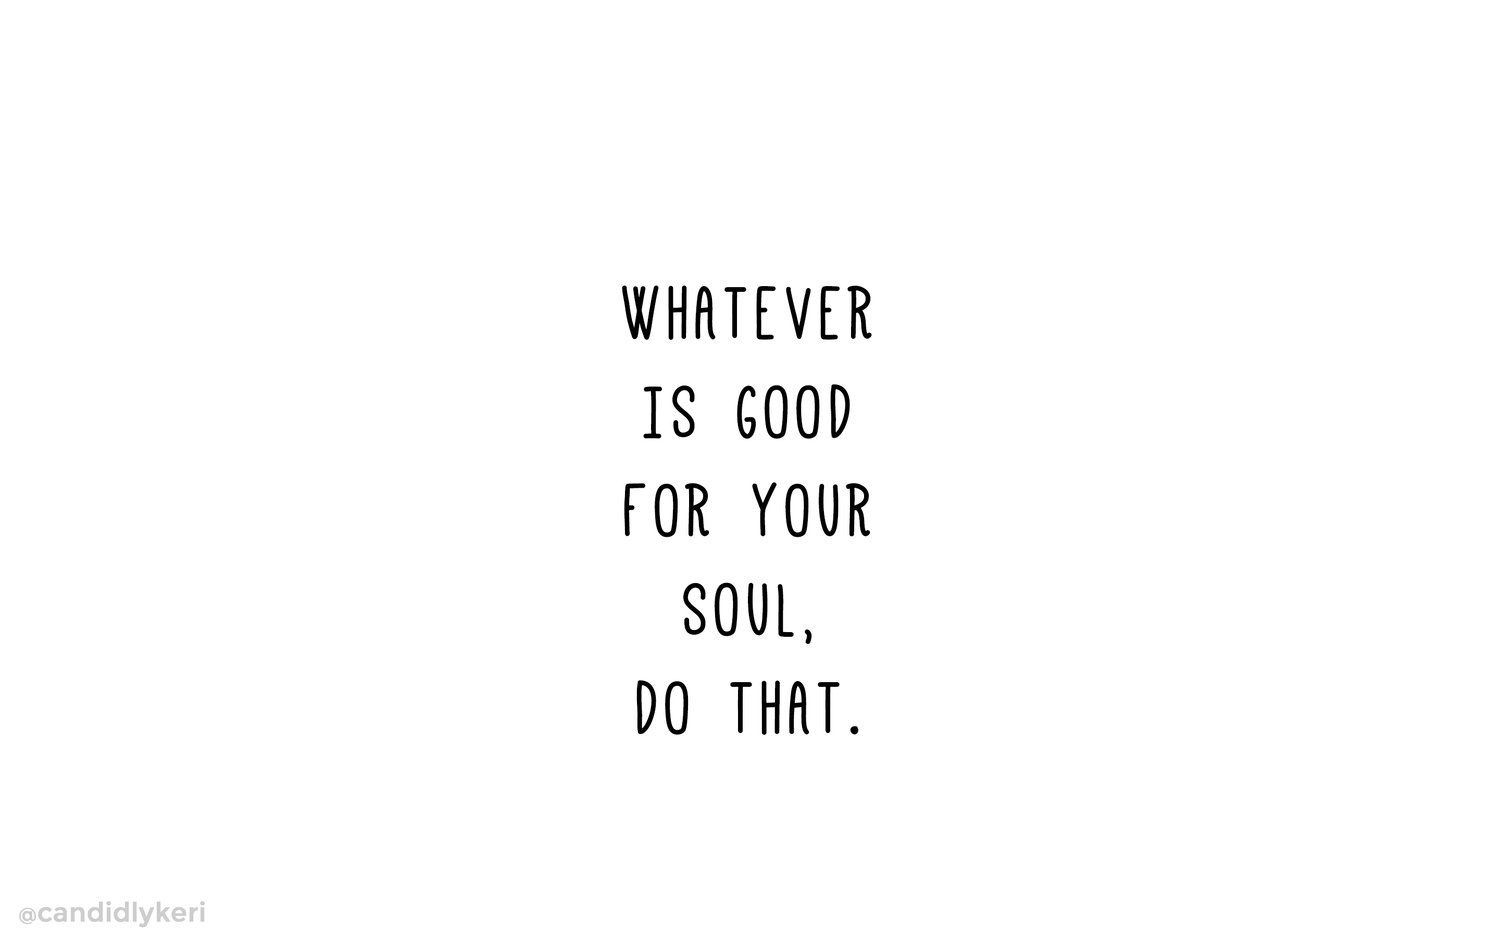 Whatever Is Good For Your Soul Desktop Laptop Wallpaper Quotes Desktop Background Quote Inspirational Quotes Background